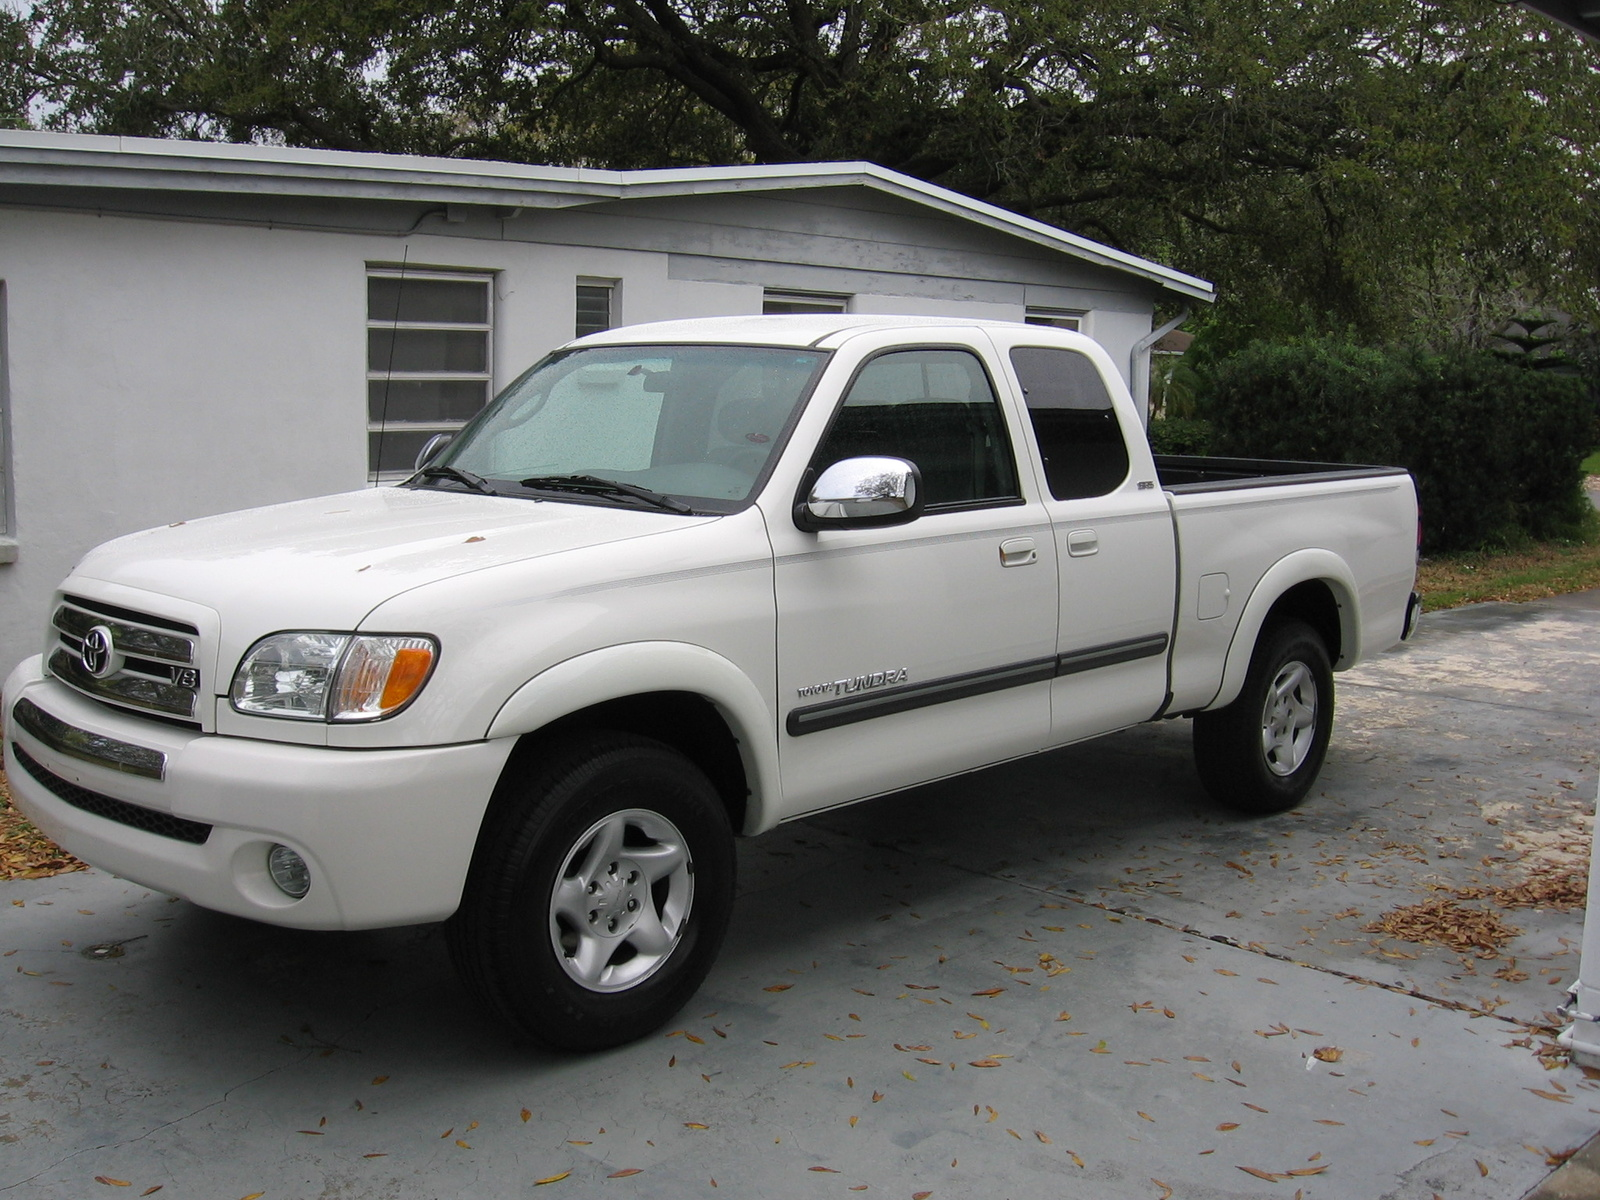 2002 toyota tundra information and photos zombiedrive. Black Bedroom Furniture Sets. Home Design Ideas